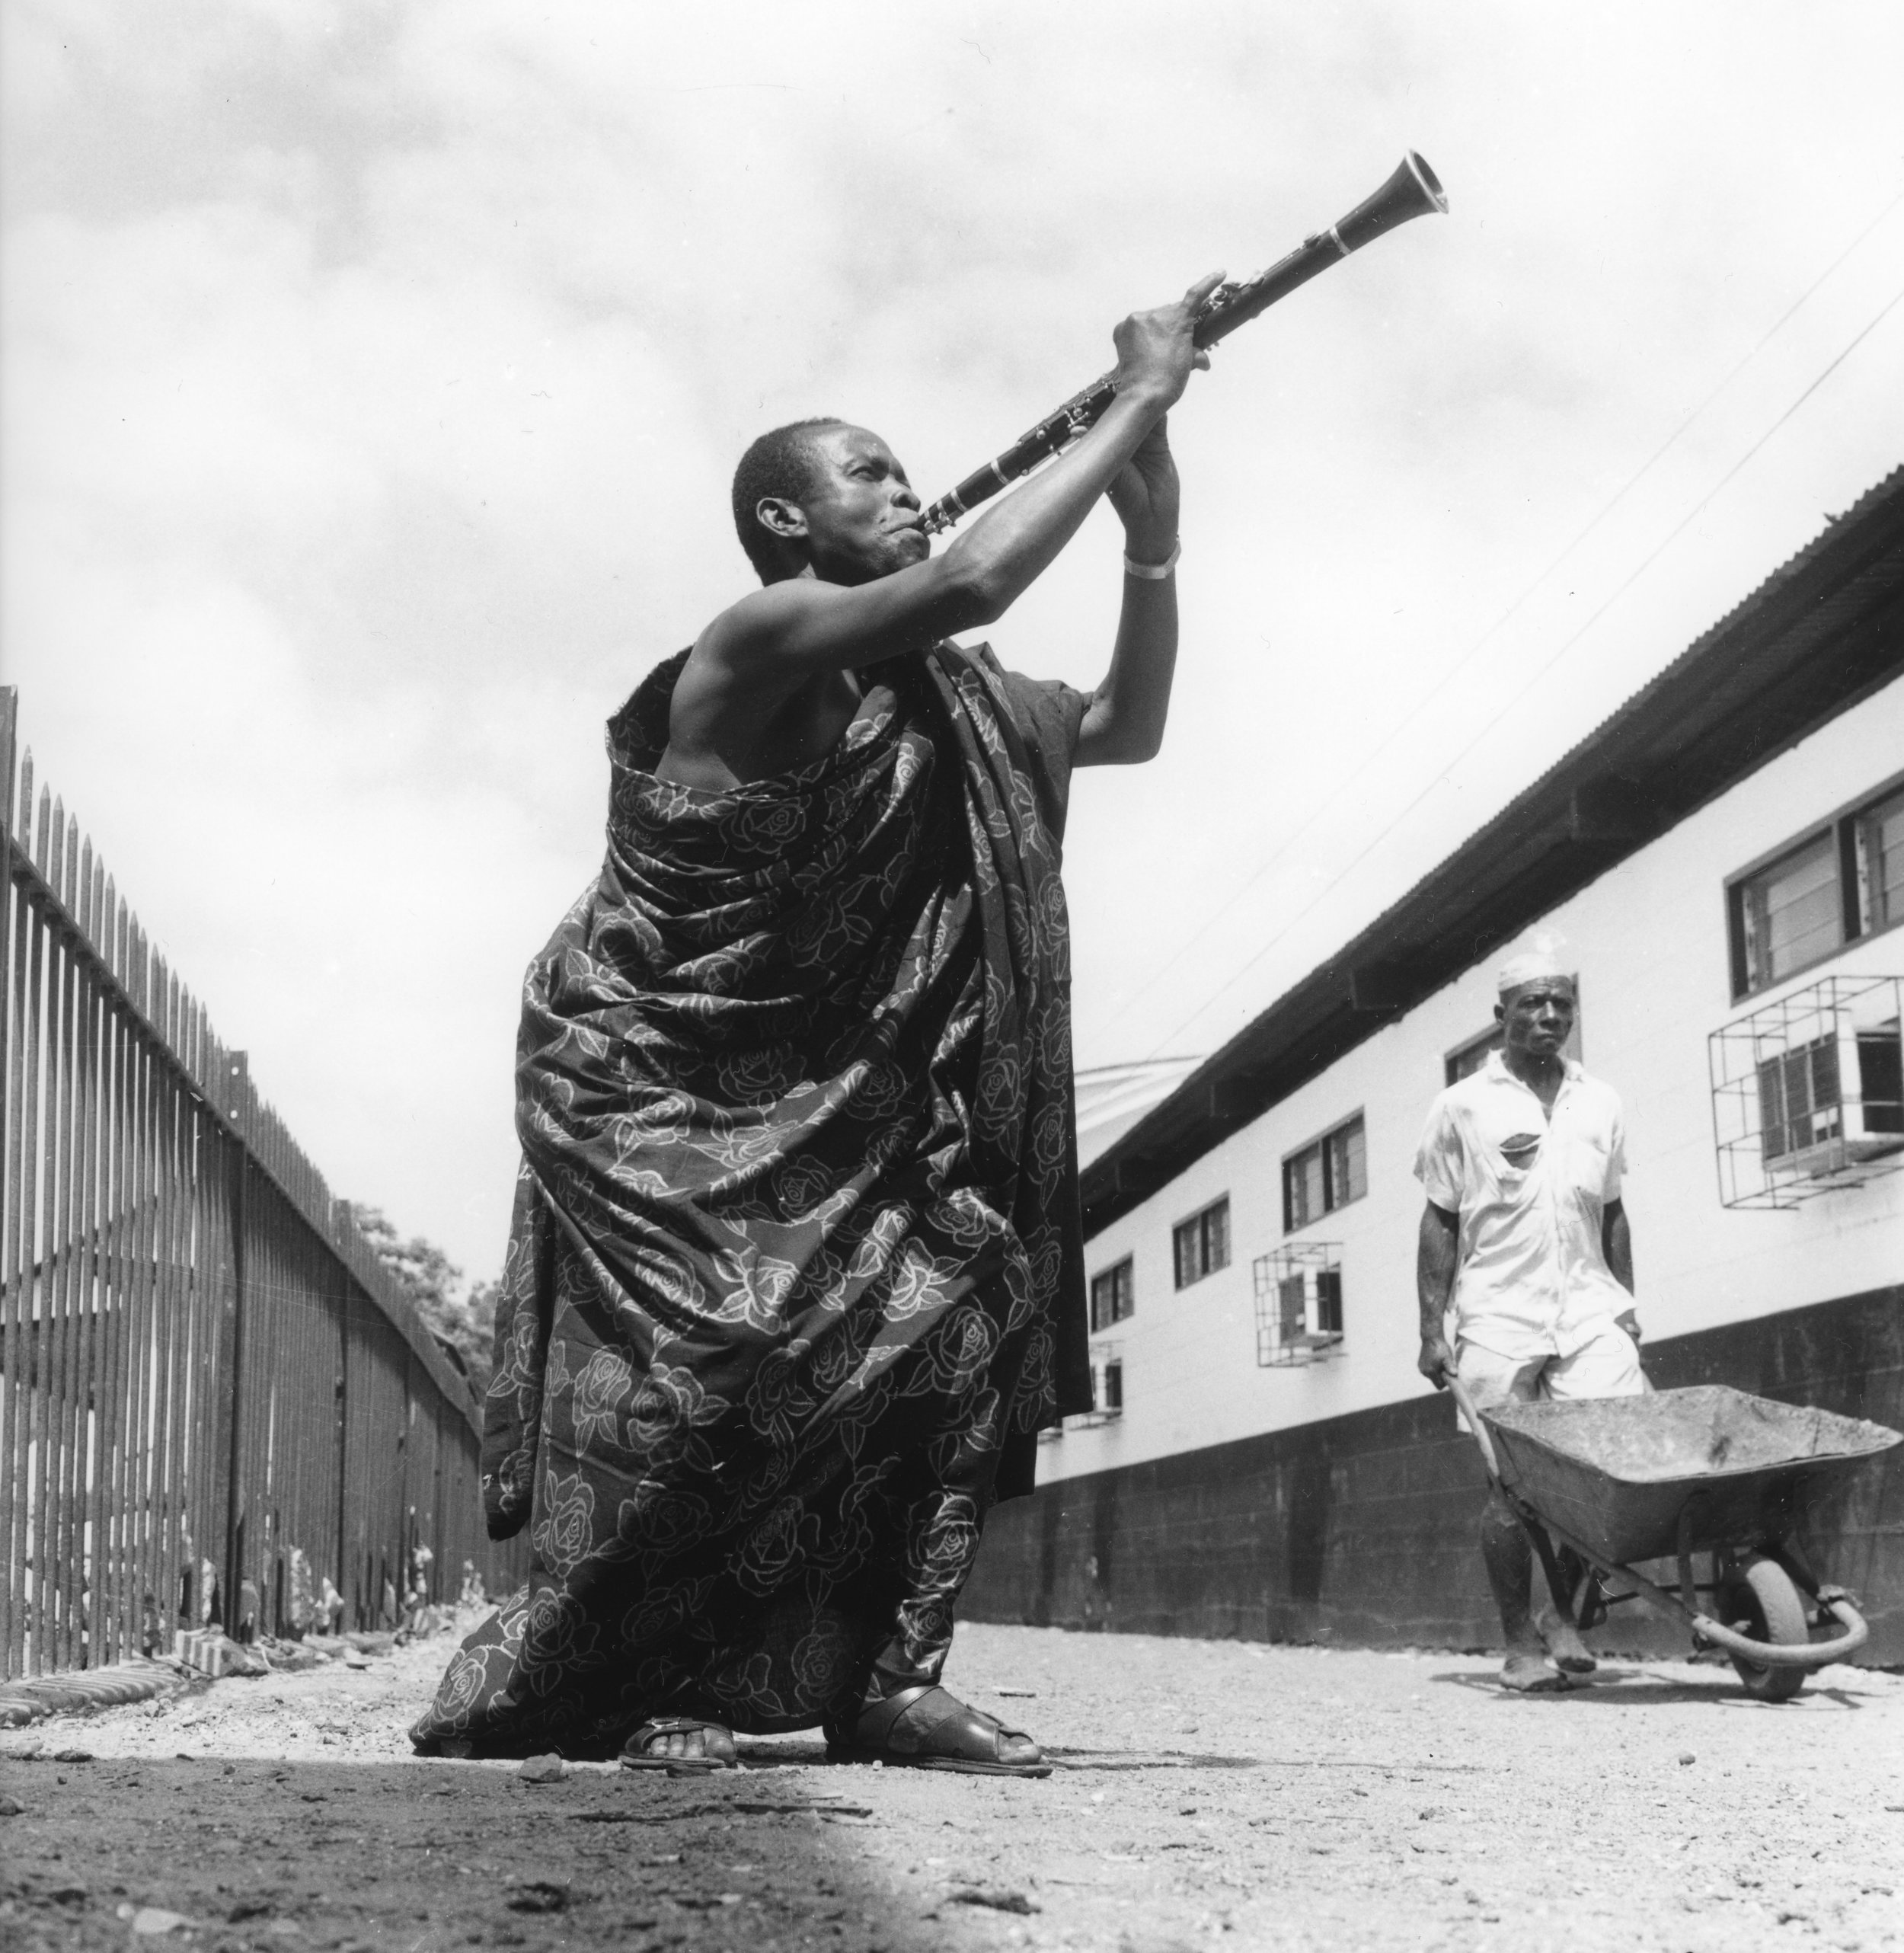 E. K. Nyame, the legendary Ghanaian musician, photographed for a record cover, Accra, c. 1975.